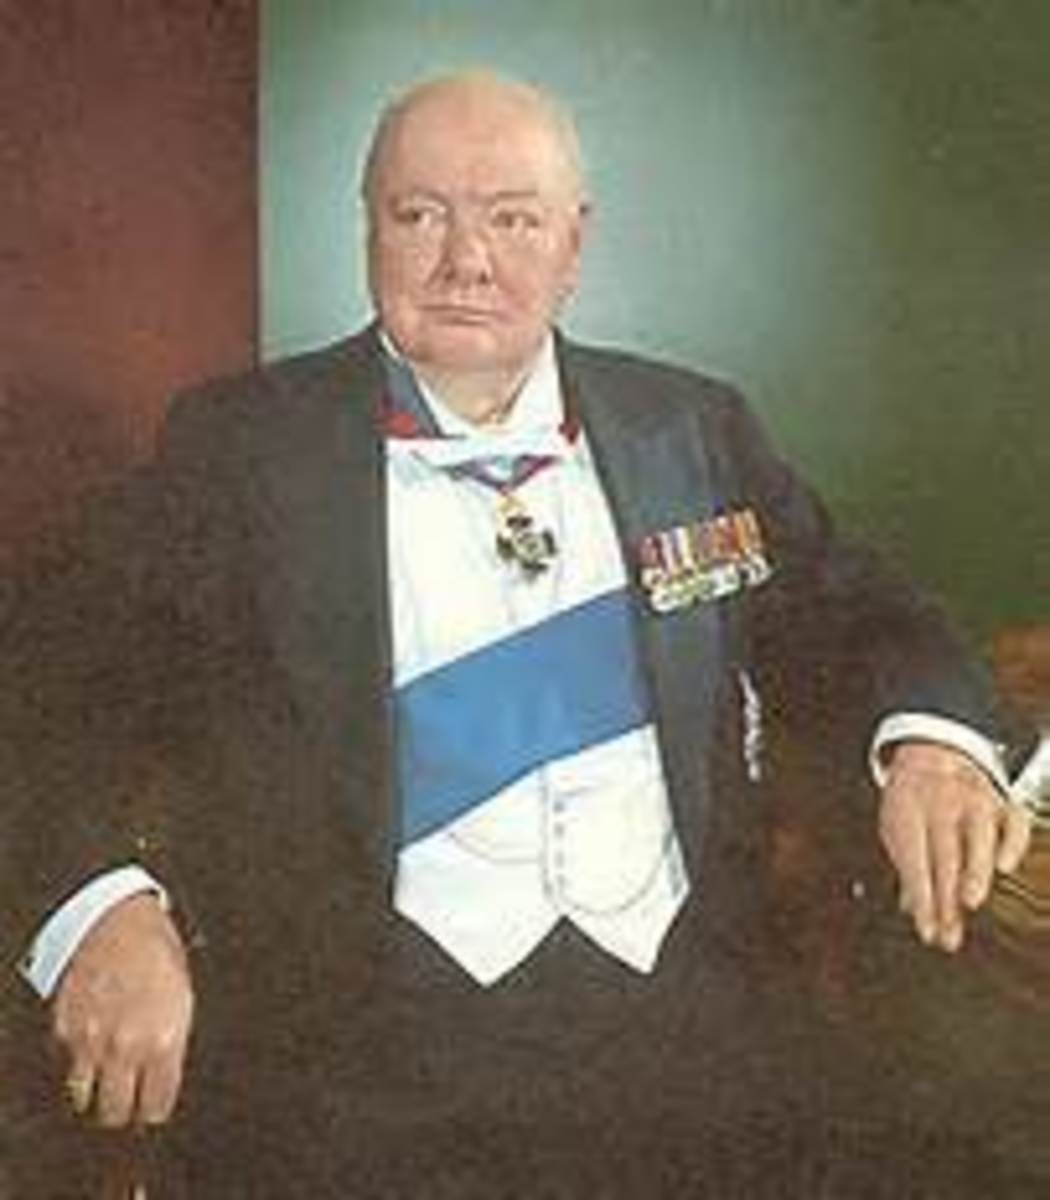 Churchill dressed in Masonic regalia